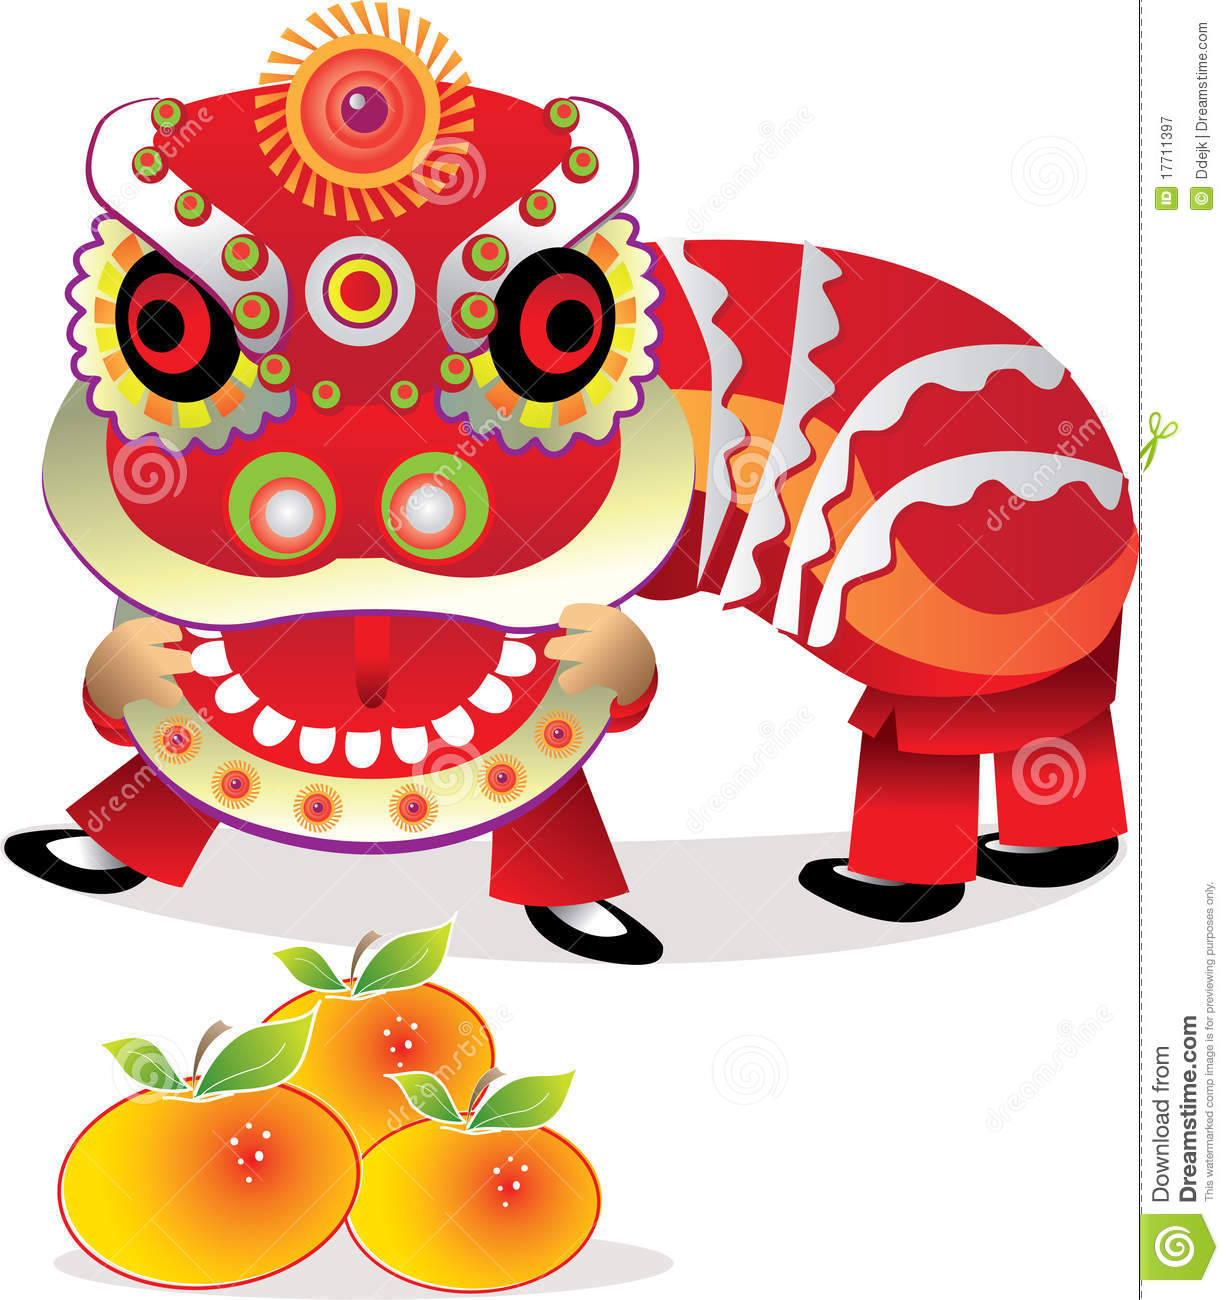 China clipart illustration.  collection of chinese